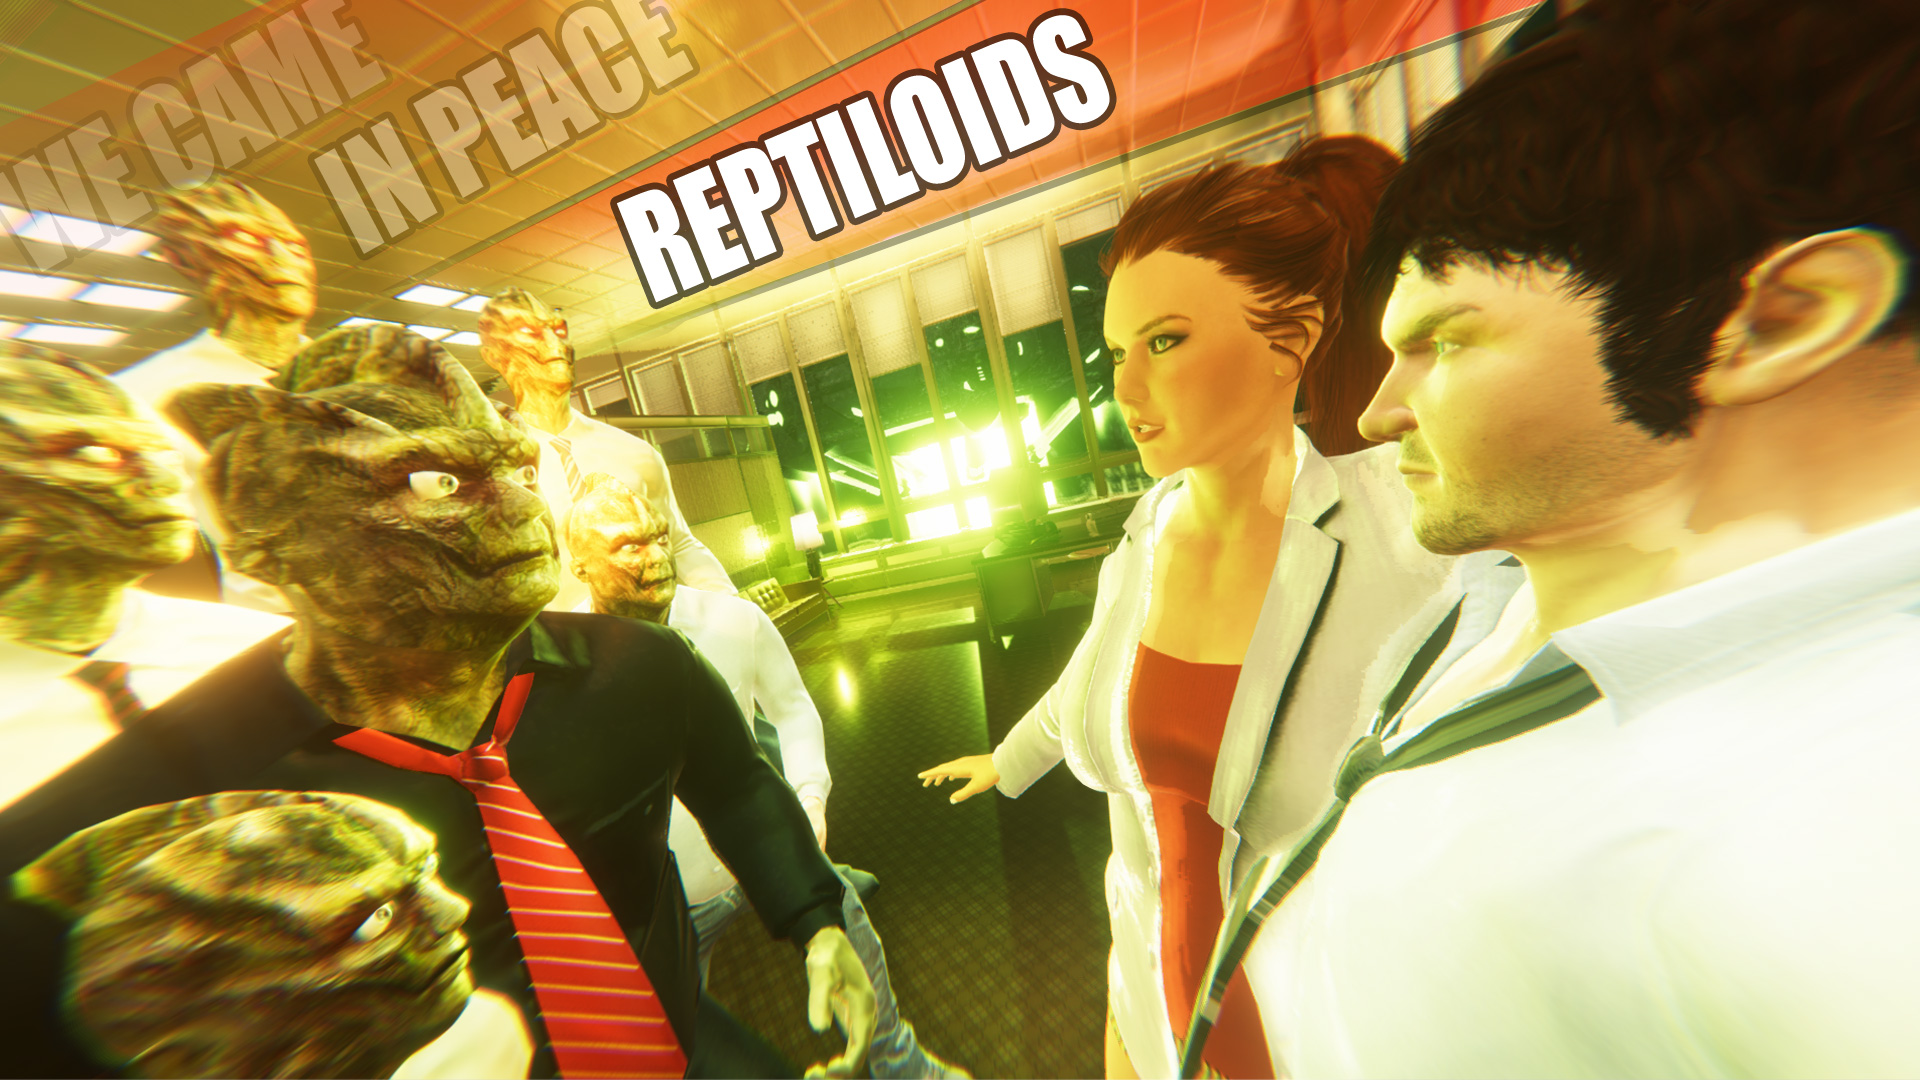 REPTILOIDS screenshot